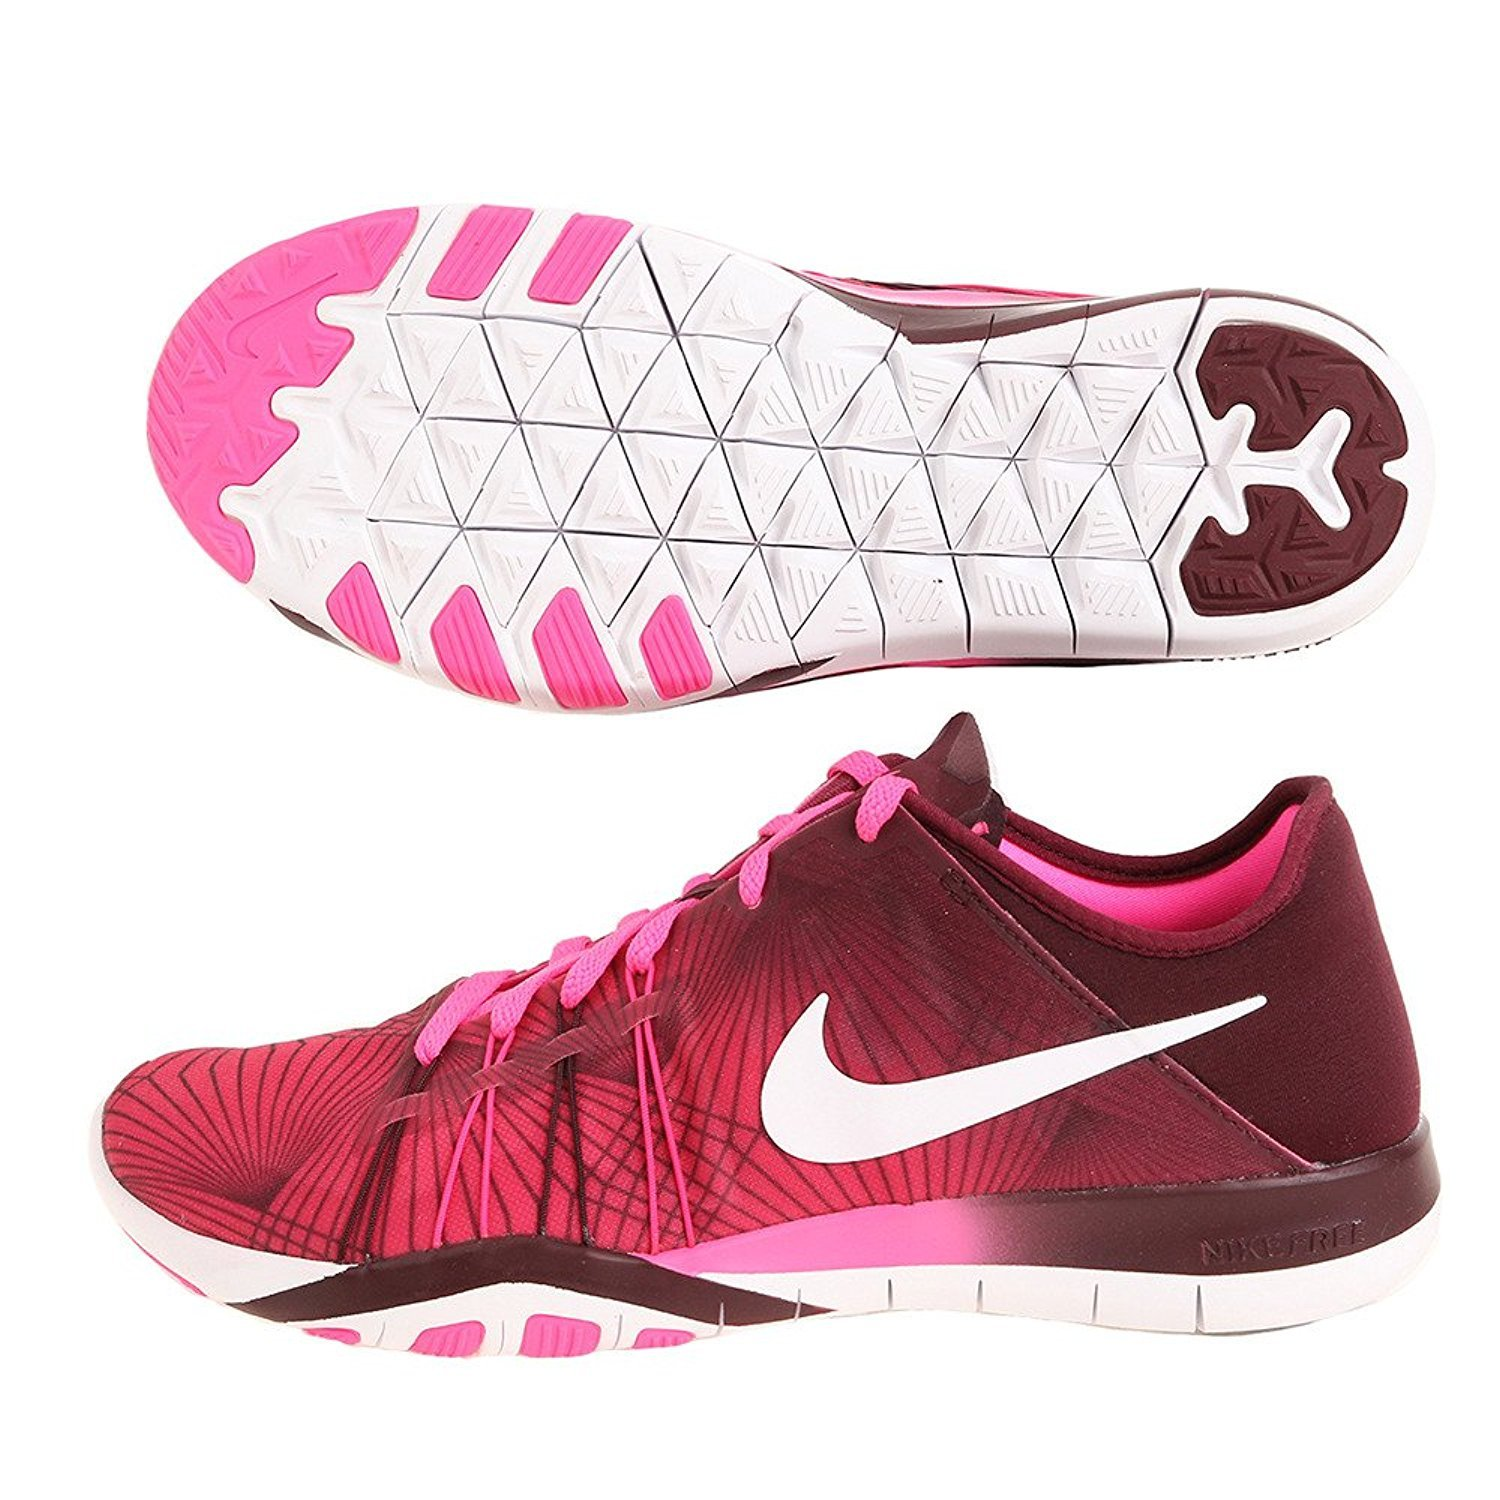 Womens Nike Free TR 6 Training Shoes B019HDOCIG 9.5 B(M) US|Pink Blast/White-night Maroon